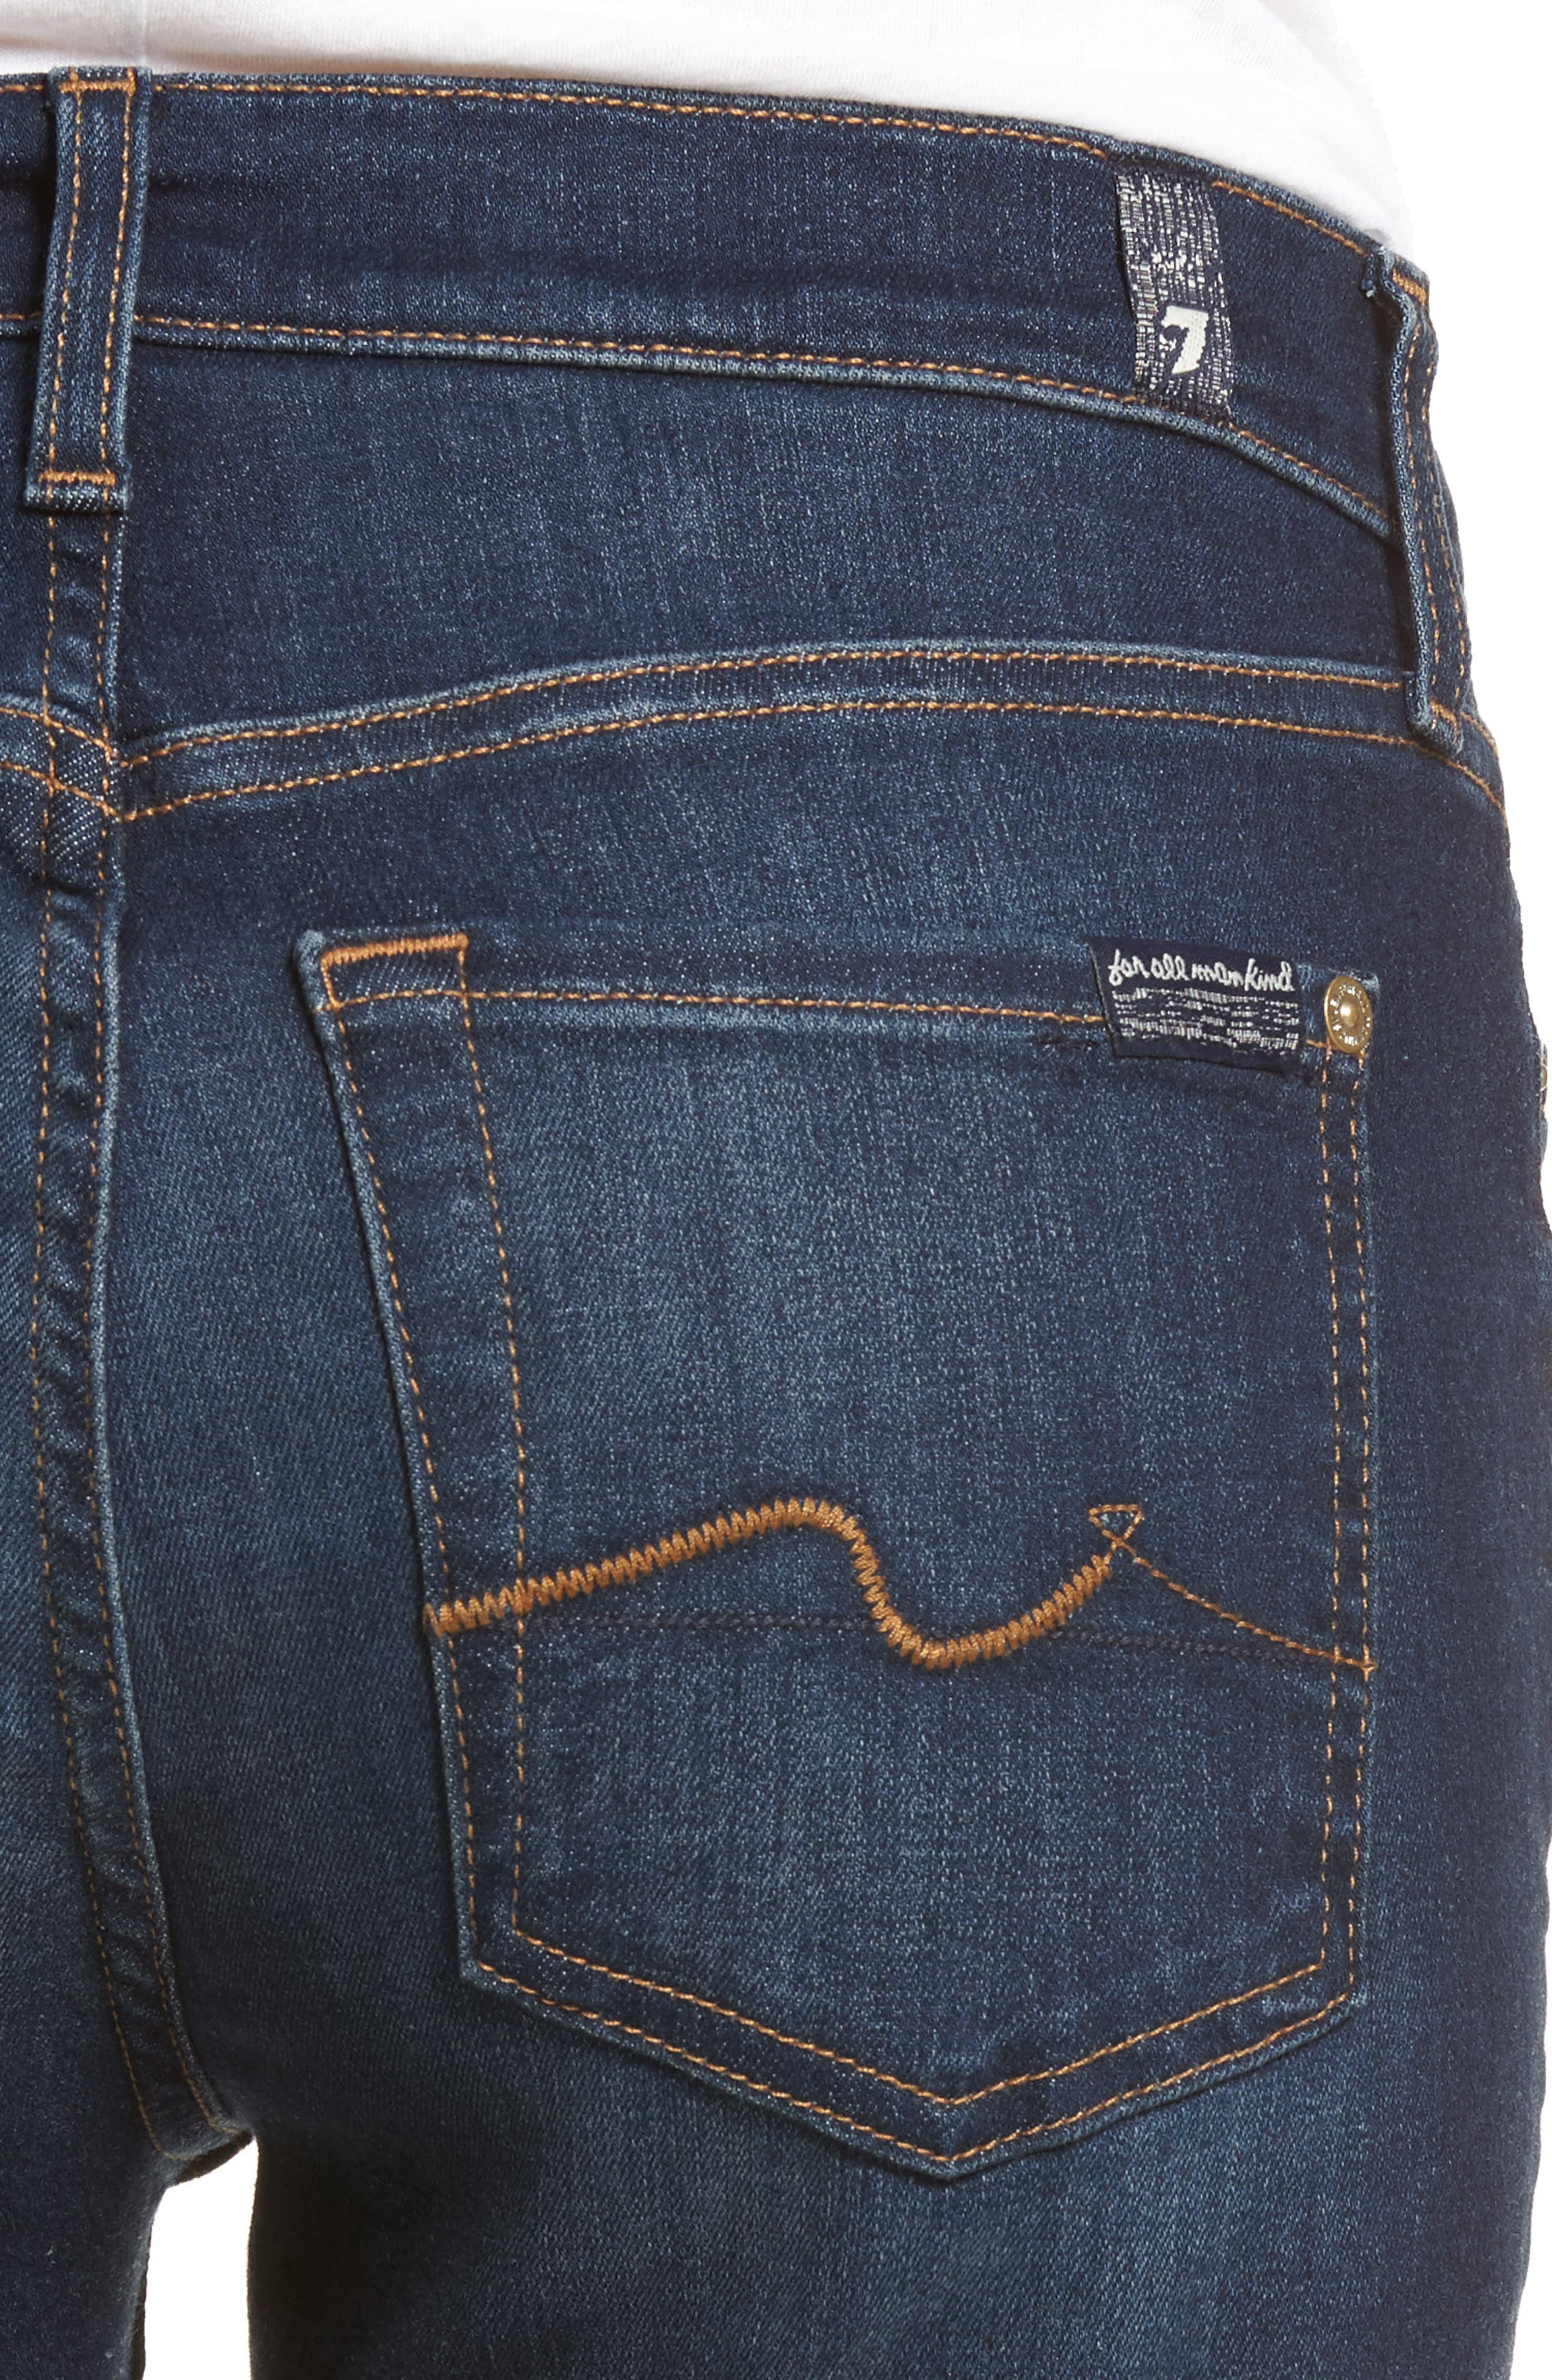 b(air) Iconic Bootcut Jeans,                             Alternate thumbnail 4, color,                             MORENO